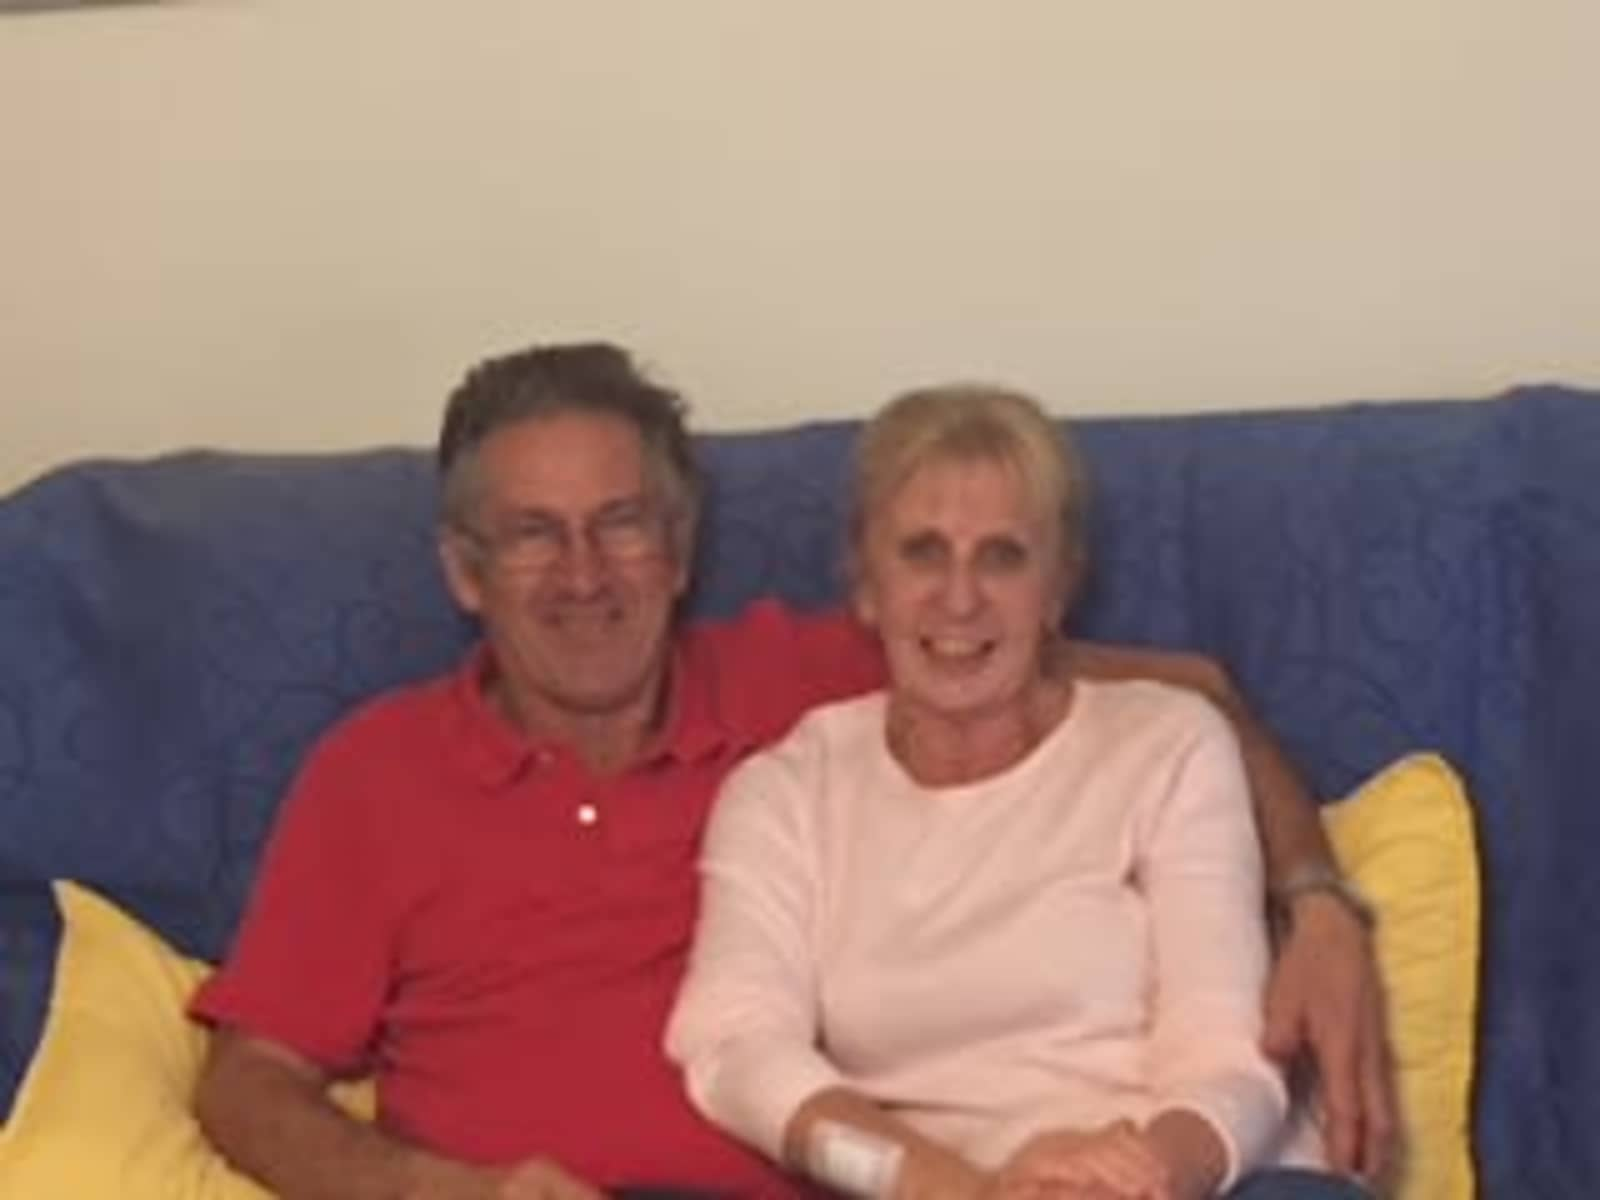 Vickie and bruce & Bruce from Cudgen, New South Wales, Australia